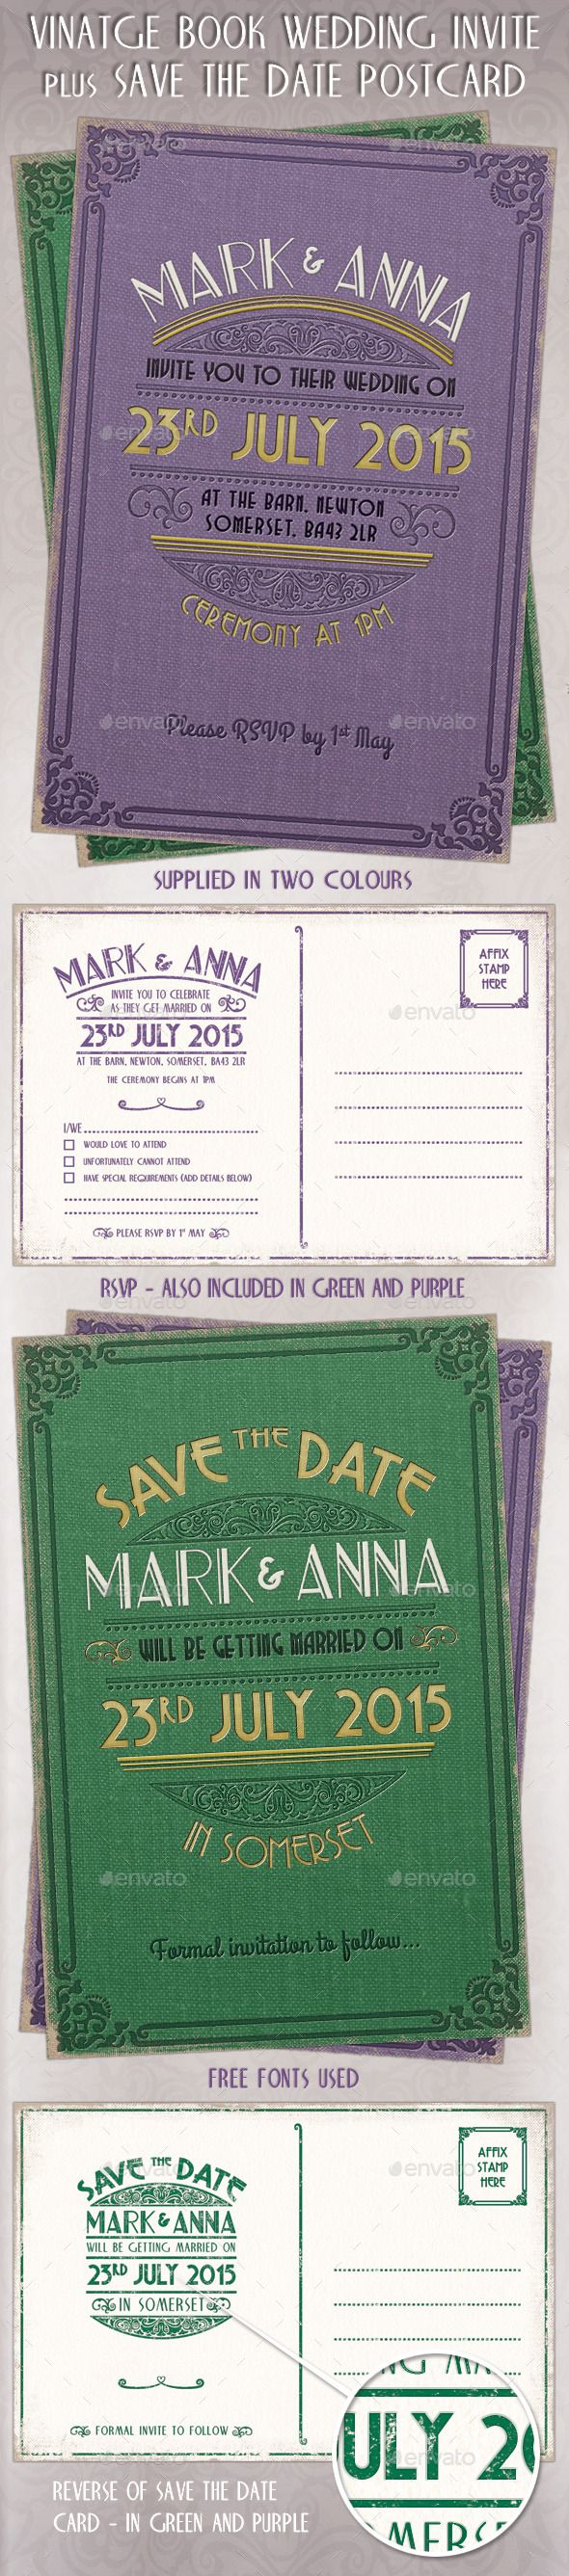 free wedding invitation psd%0A Vintage Wedding Invites  RSVP  u     Save the Date